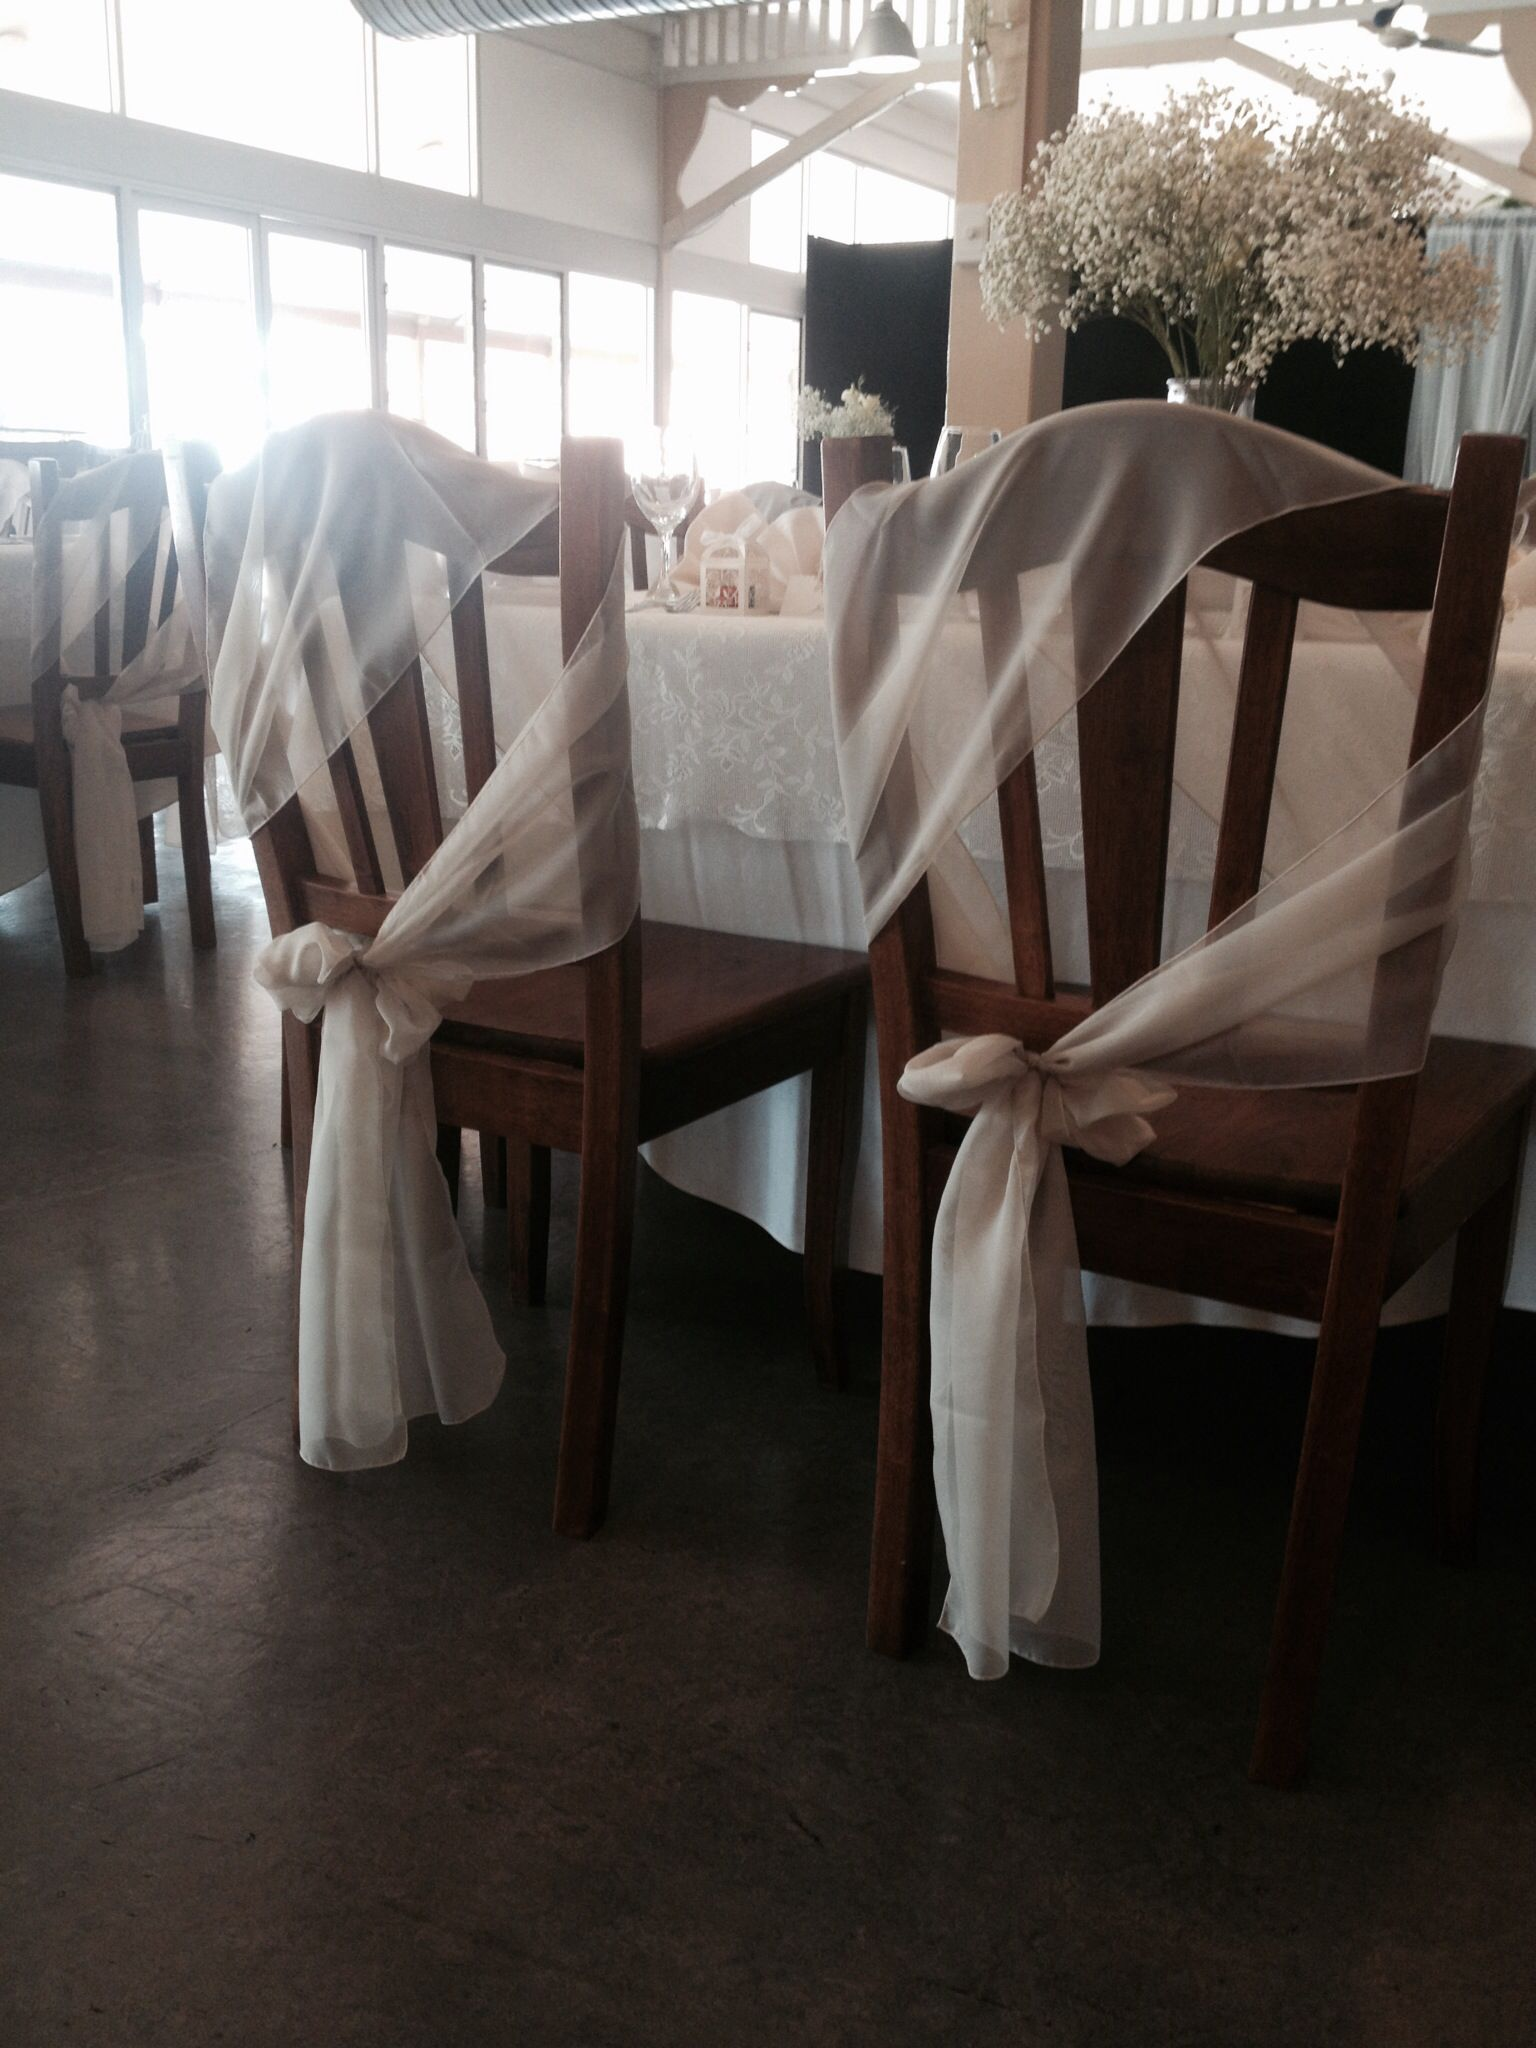 Chair sashes for wooden chairs suit a vintage rustic wedding